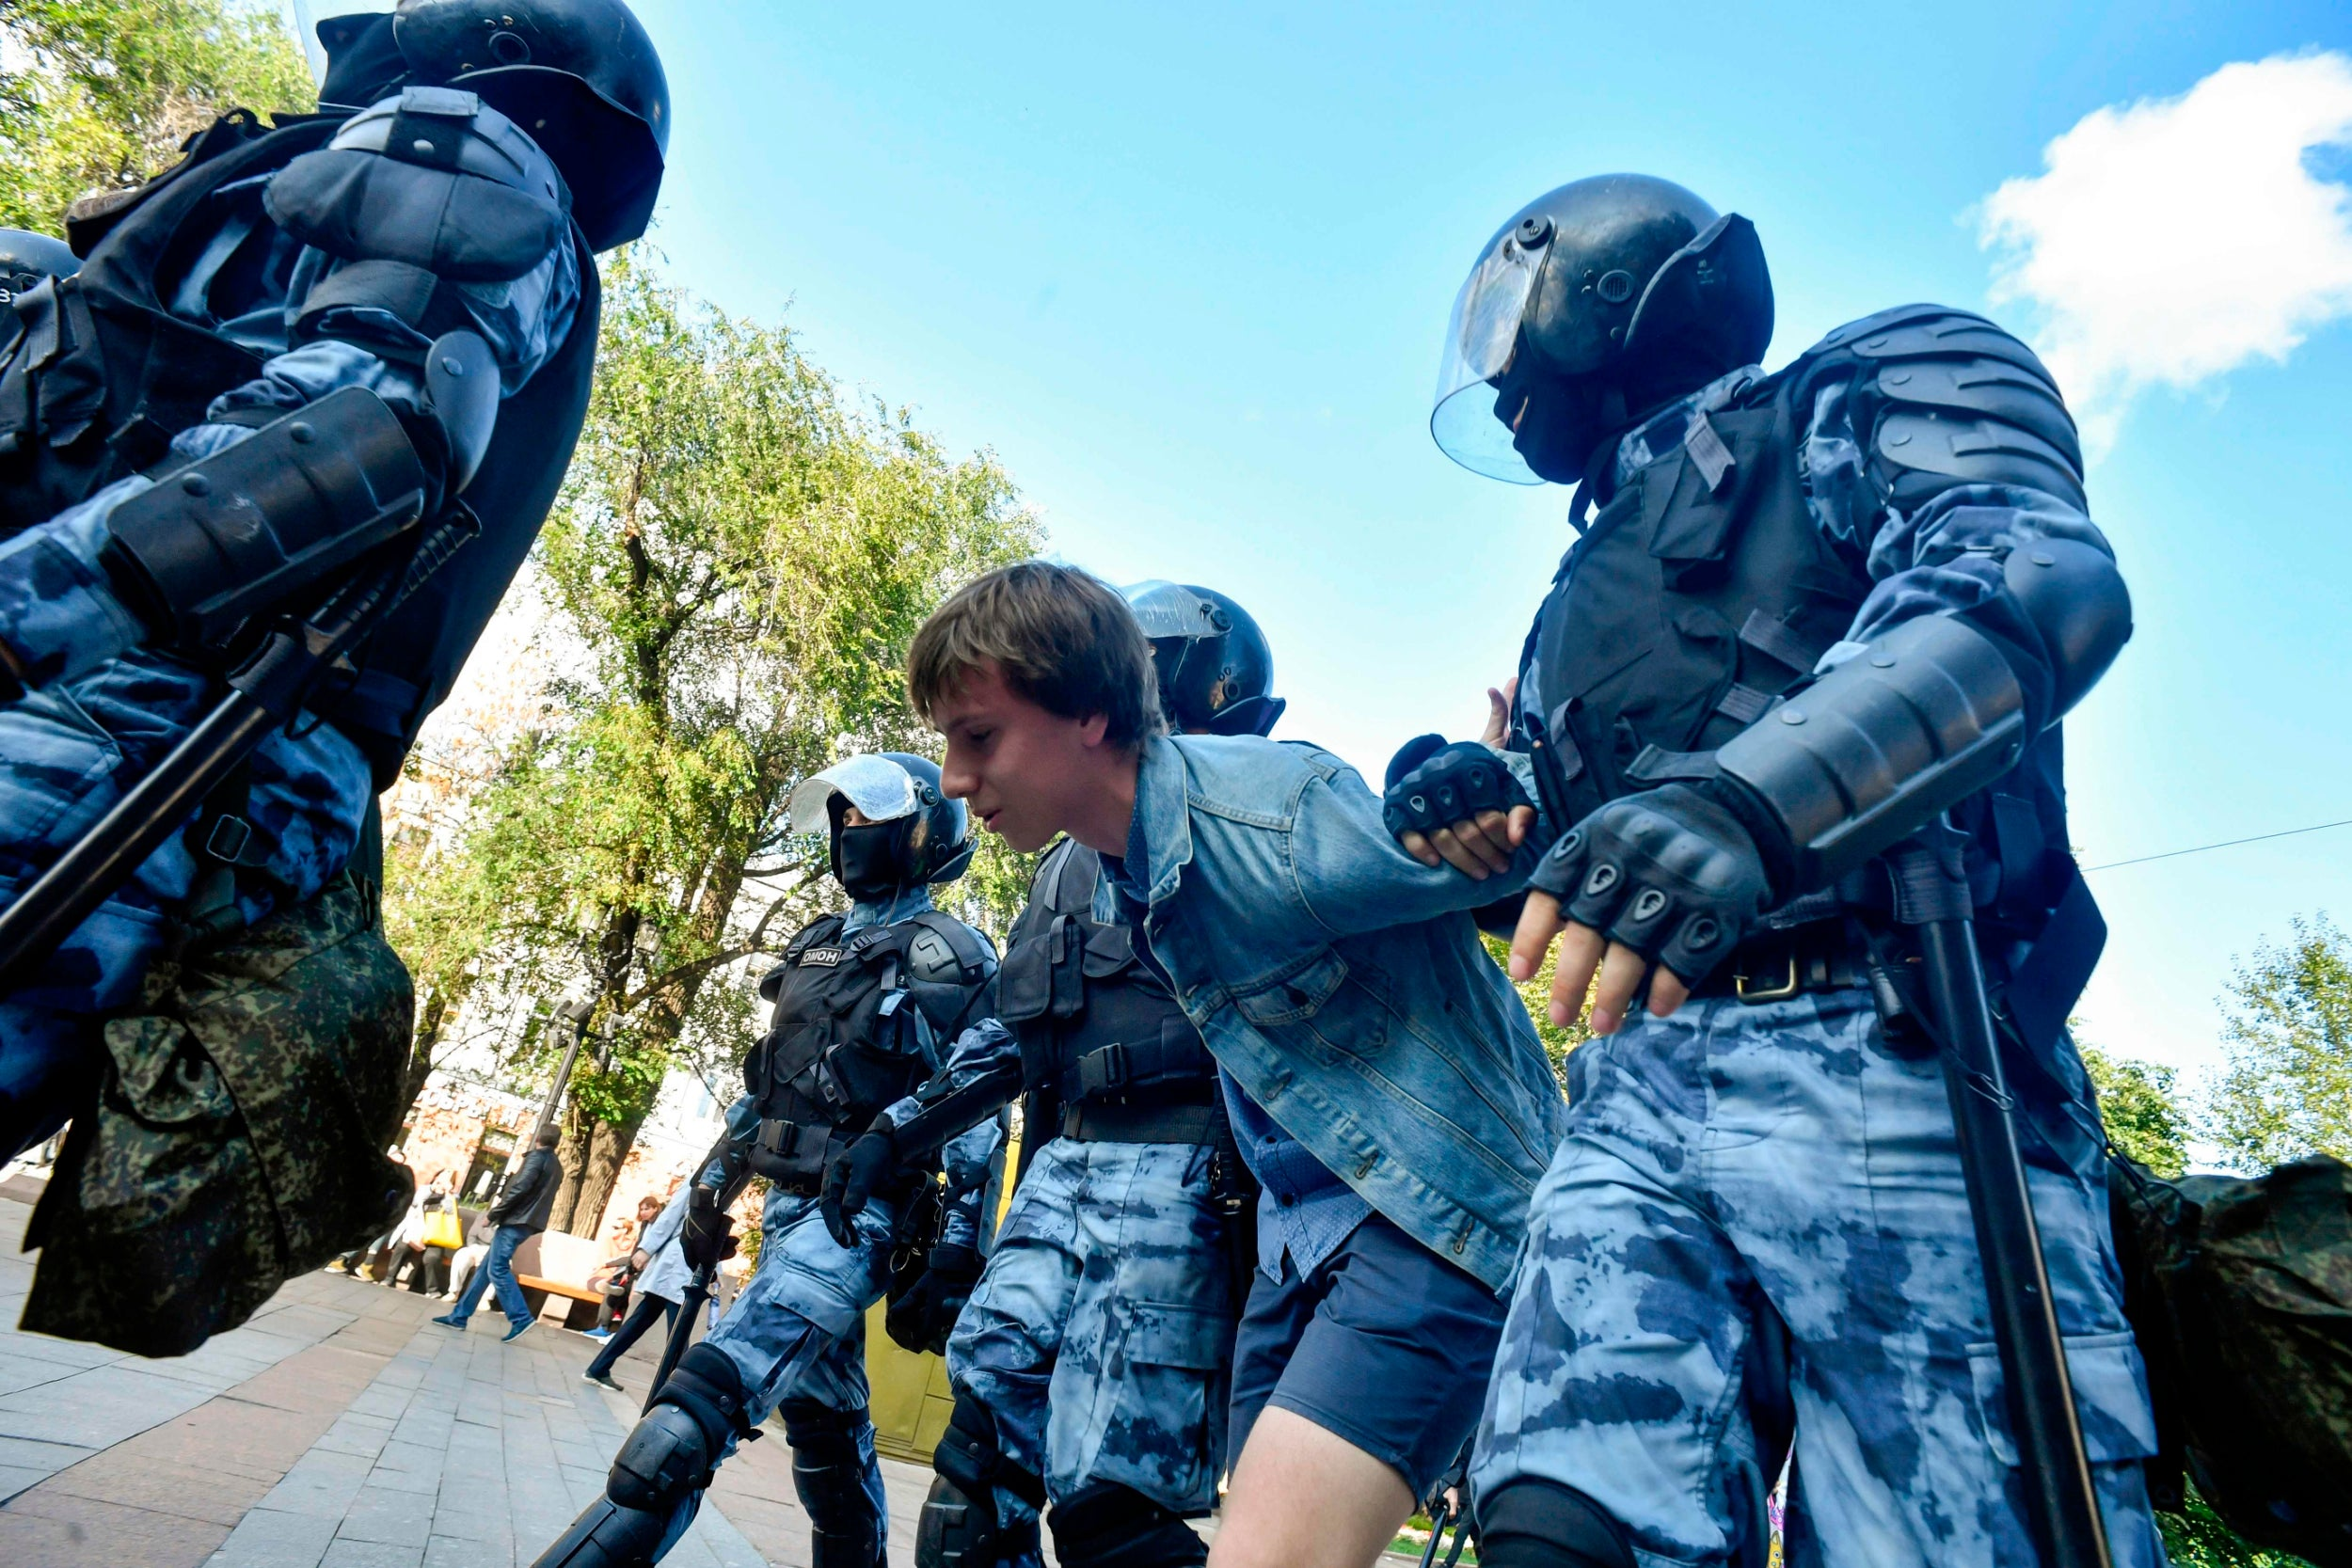 https://static.independent.co.uk/s3fs-public/thumbnails/image/2019/08/03/16/Moscow-protests-12.jpg